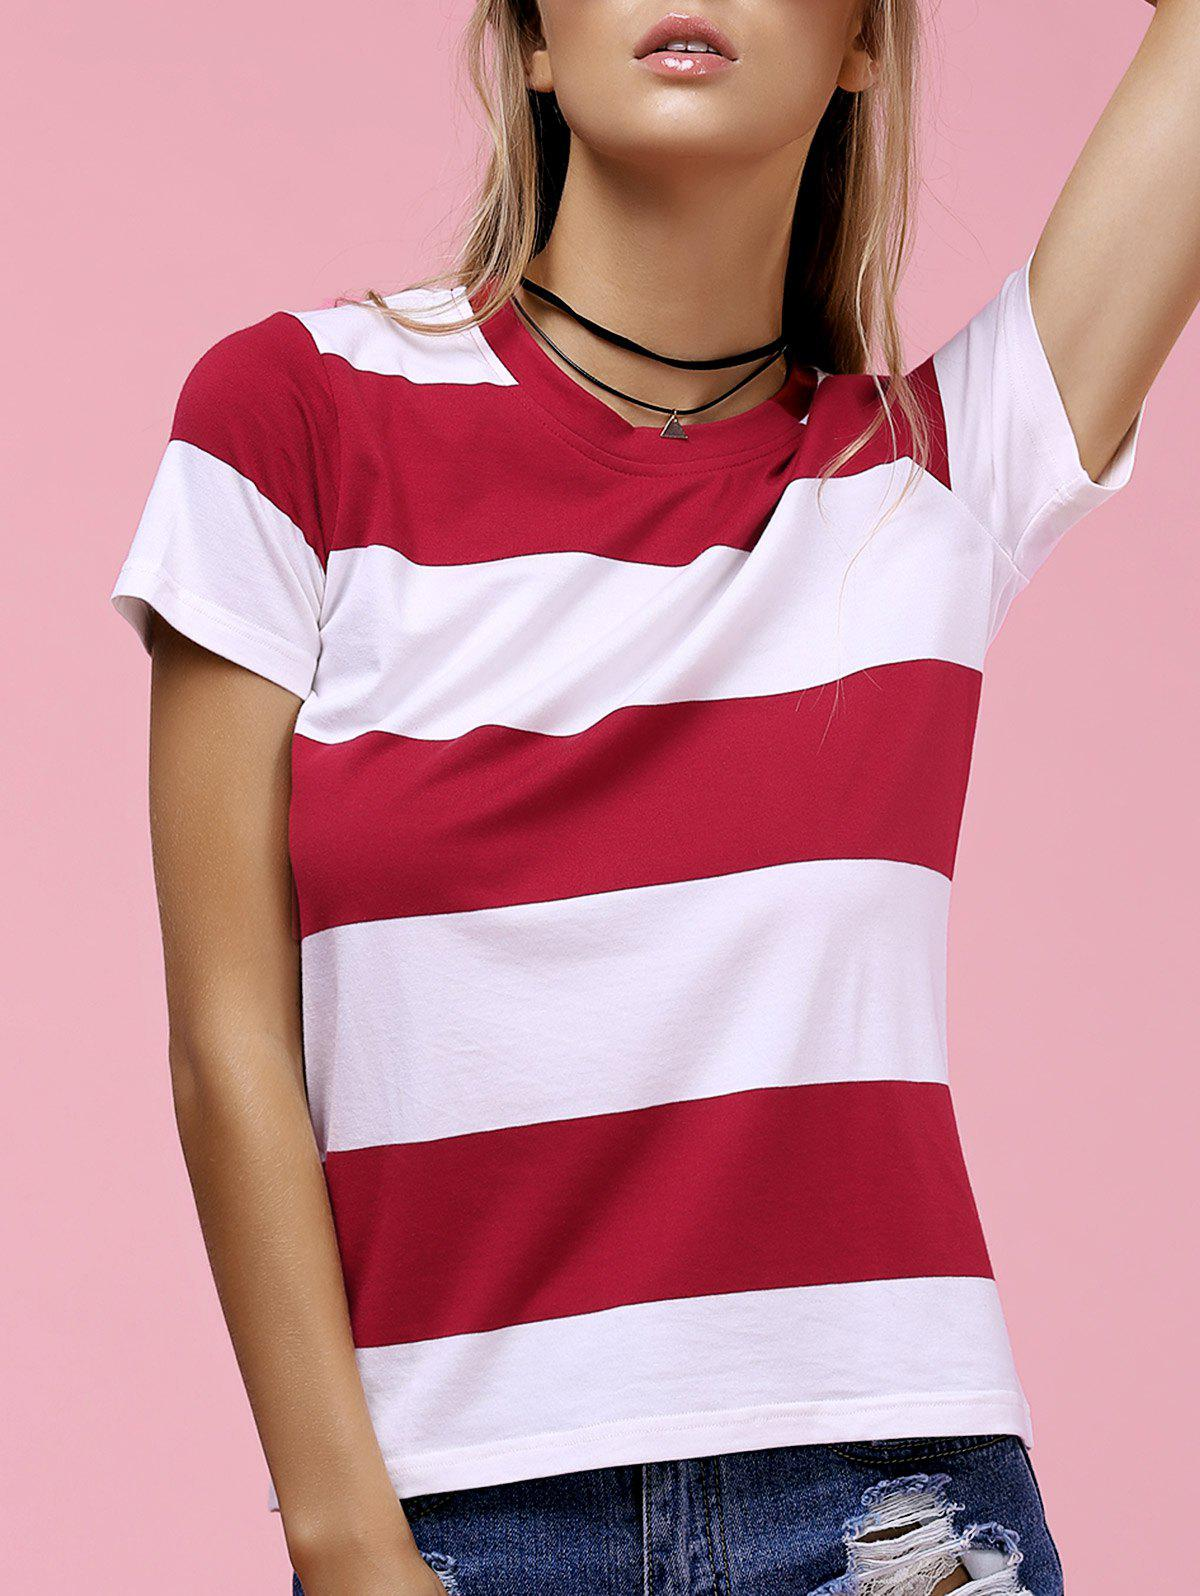 Casual Red And White Striped Round Neck Short Sleeve Tee For Women - RED/WHITE M